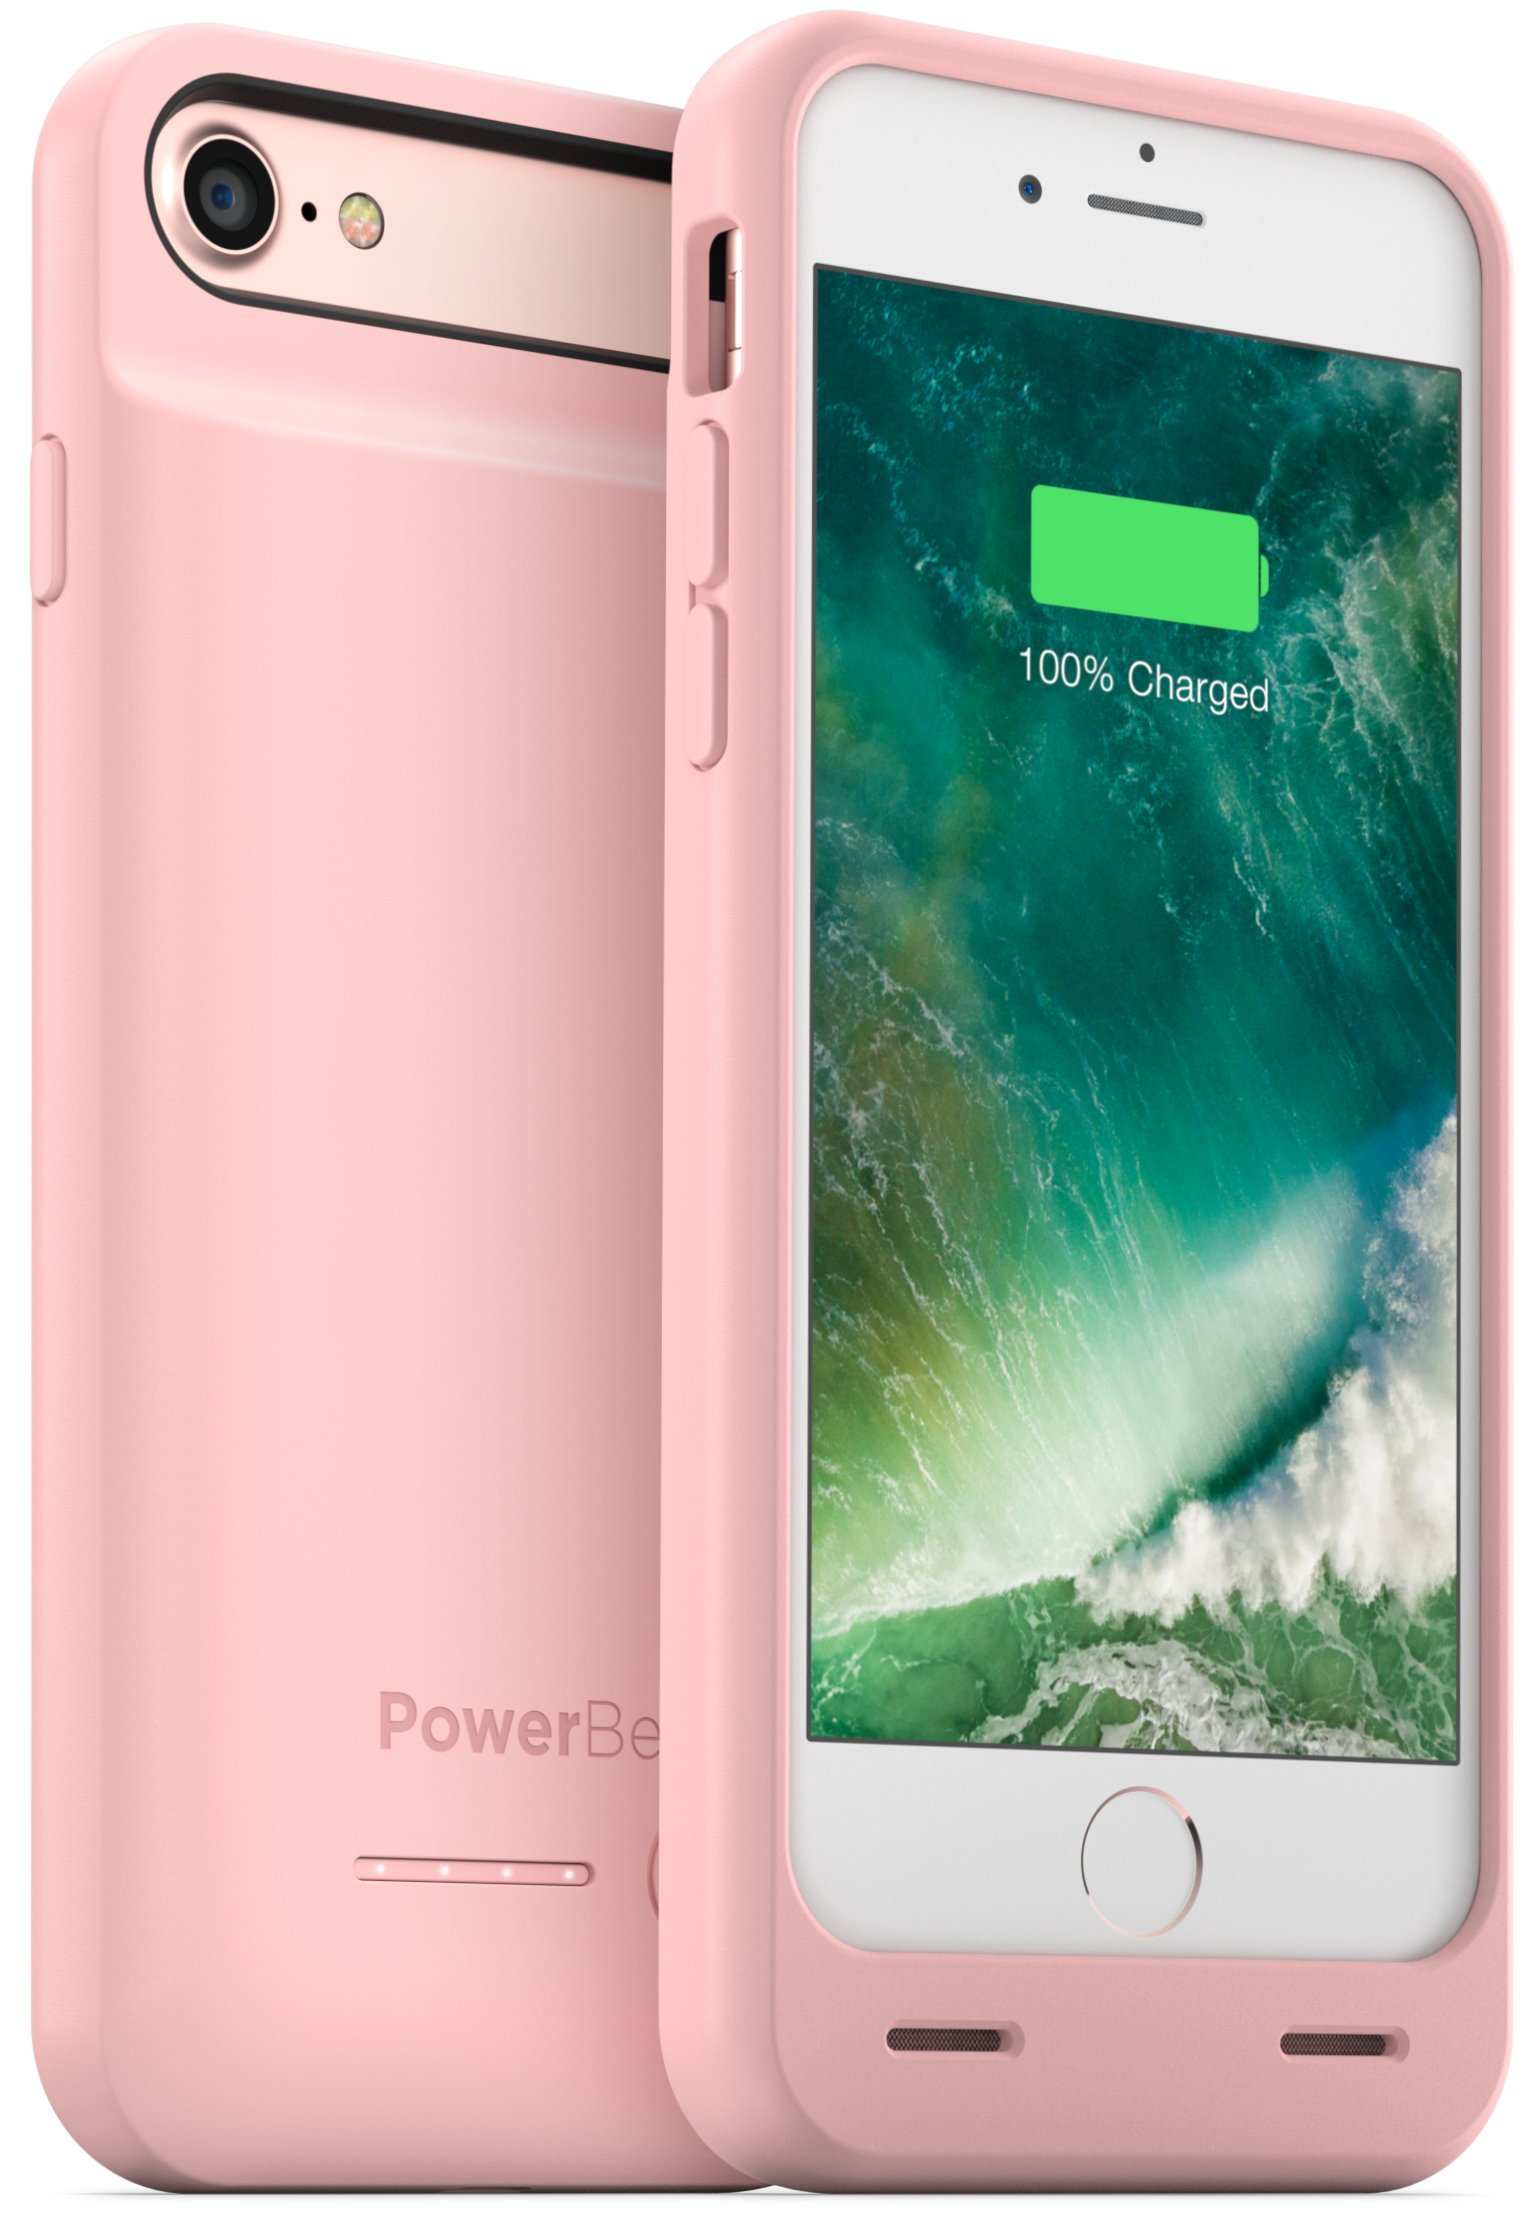 PowerBear iPhone 7 Battery Case/iPhone 8 Battery Case (MFI) [3100mAh] High Capacity Rechargeable Charger Pack Apple iPhone 7/8 (up to 160% Extra Battery) - Pink [24 Month Warranty]